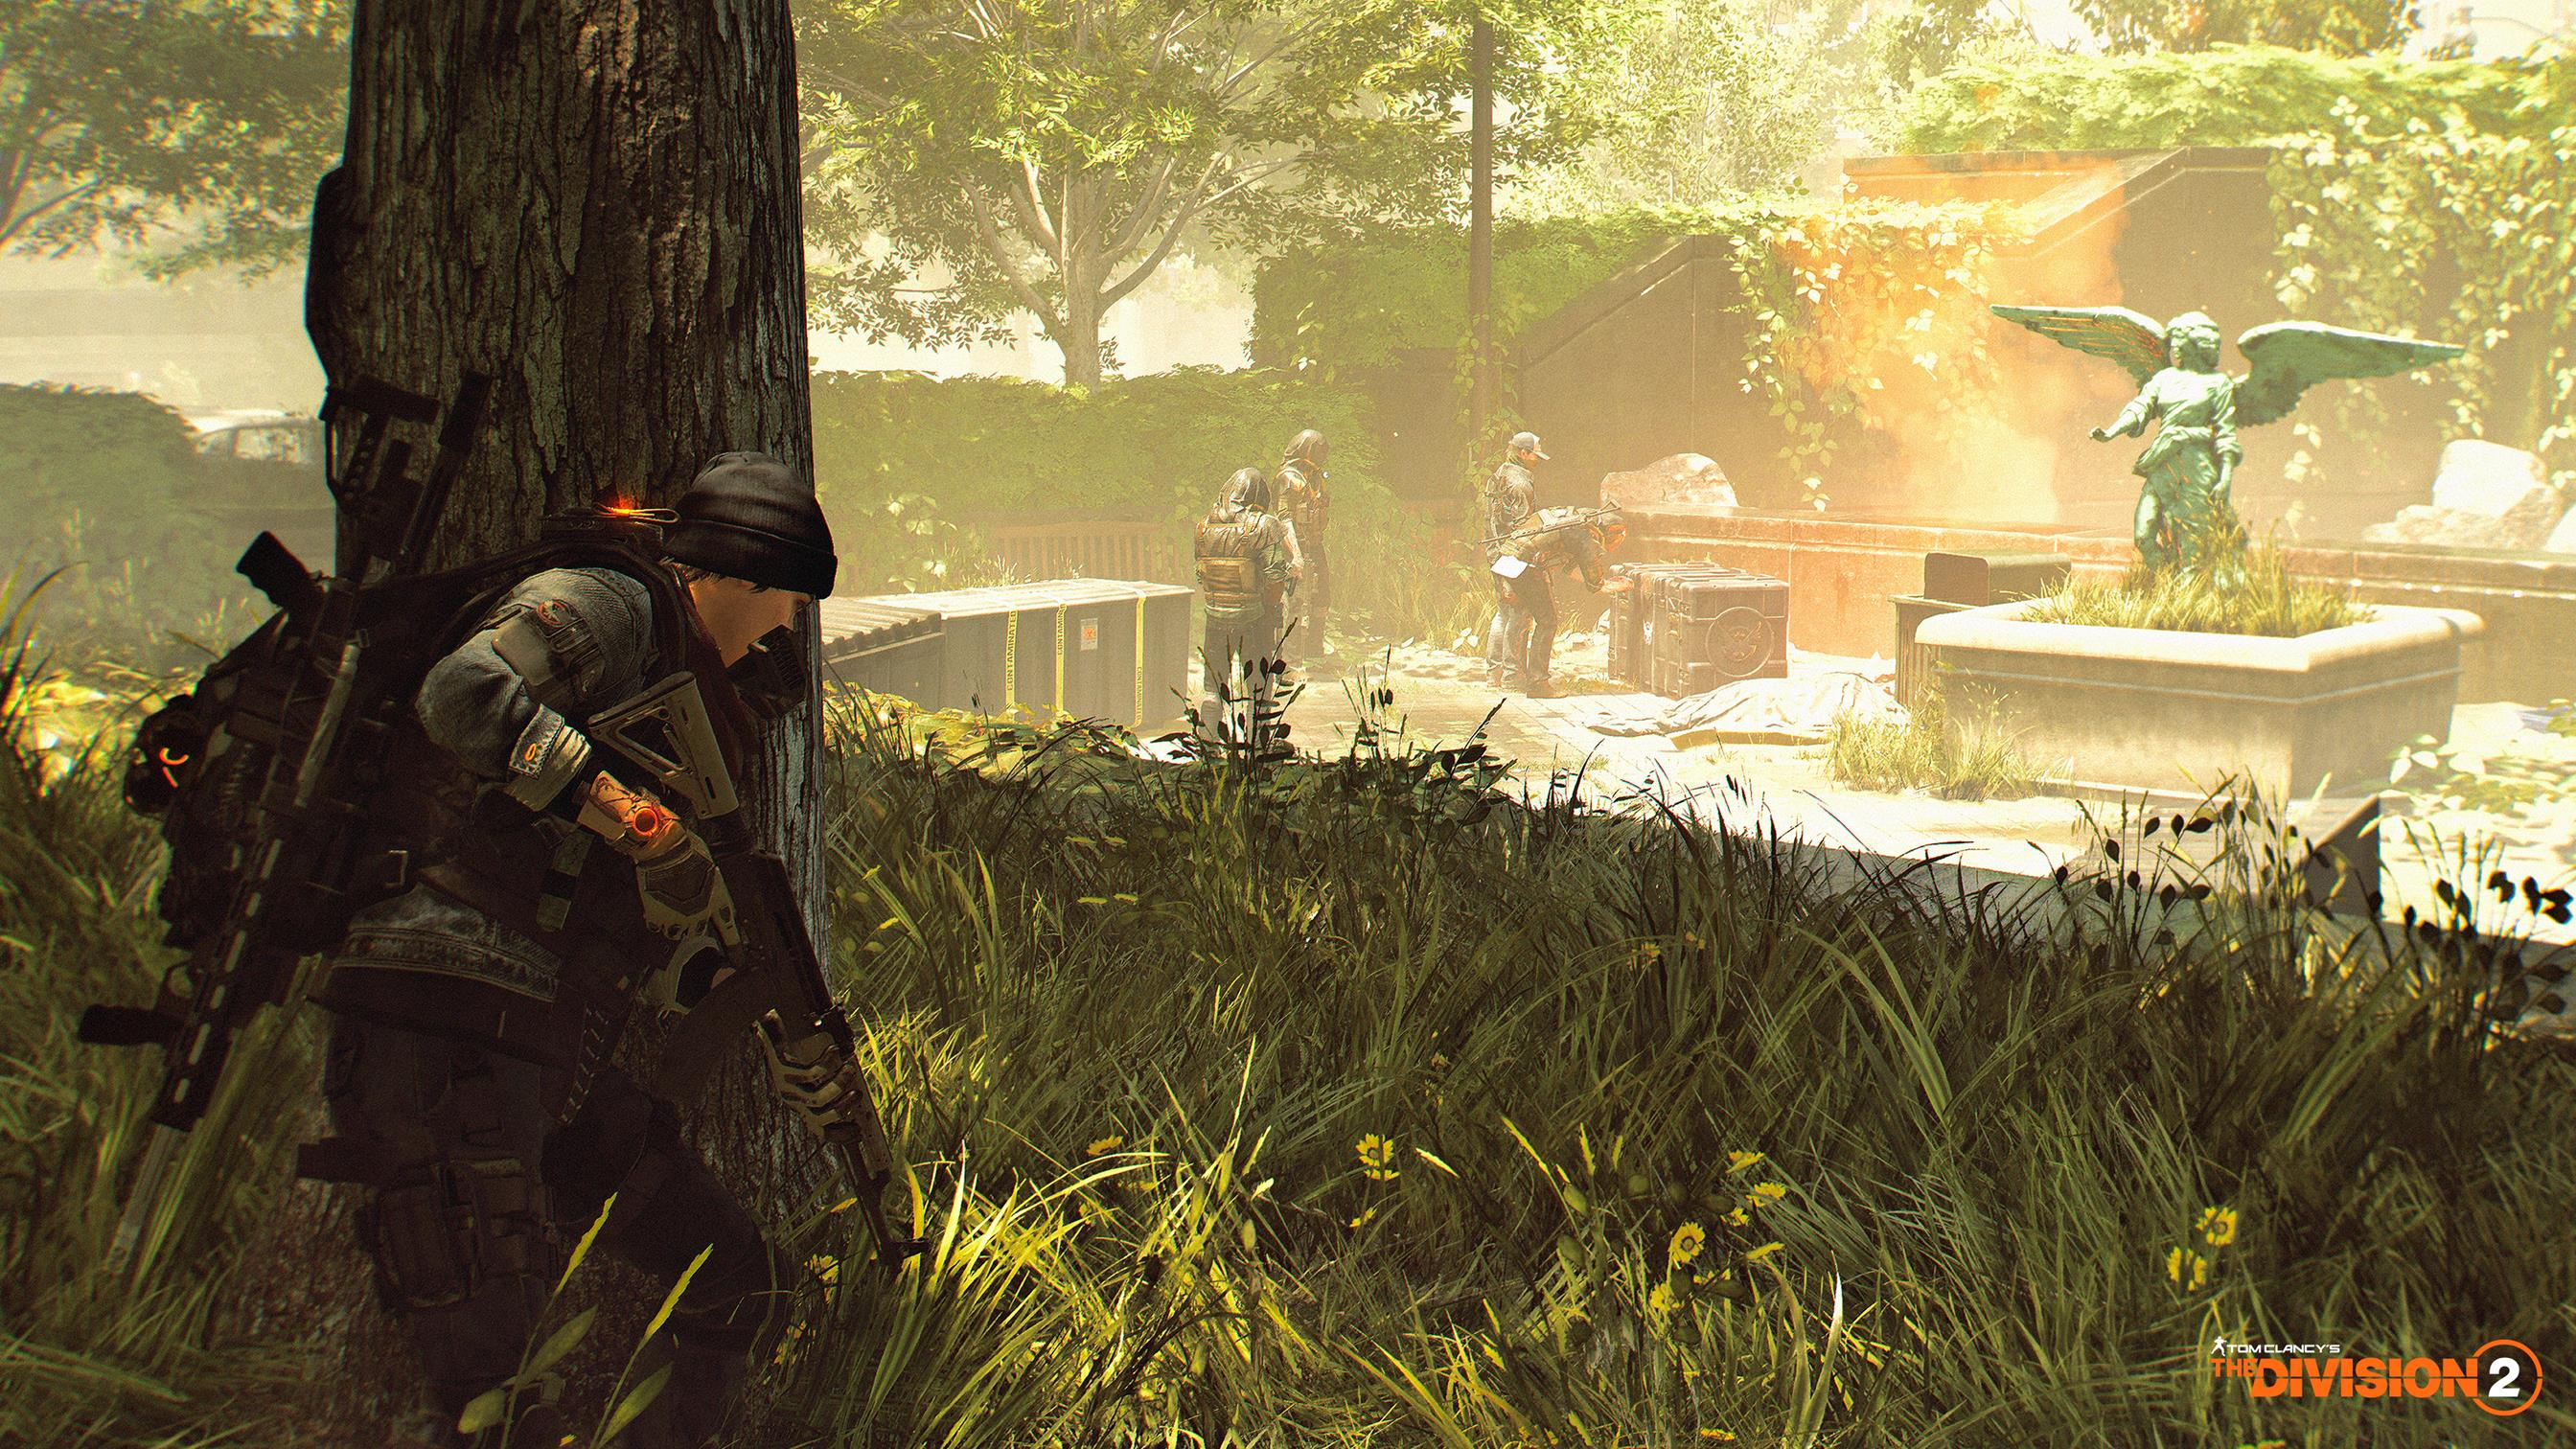 The Division 2 leaked Dark Hours raid details reveal